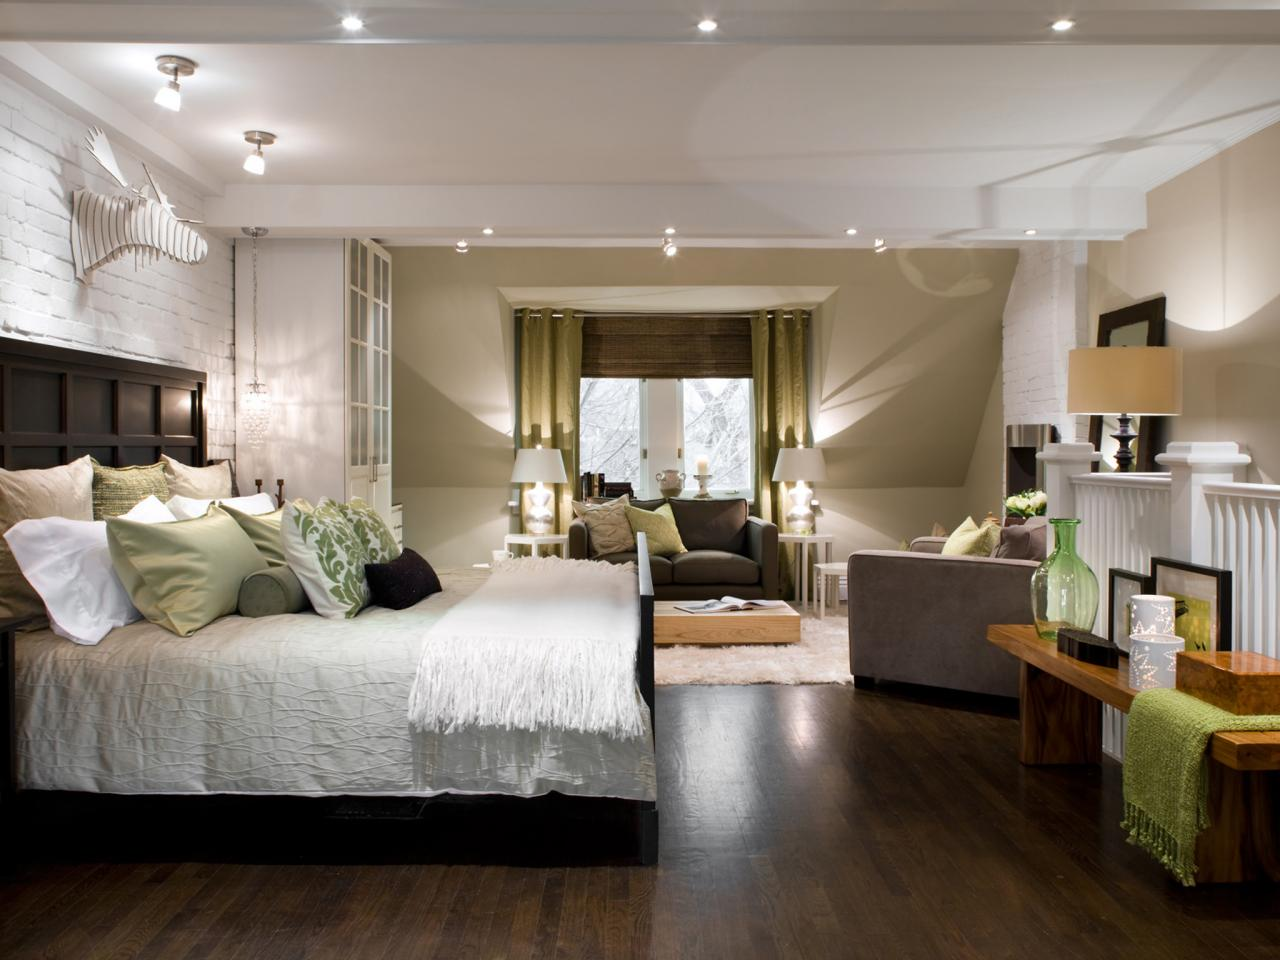 Bedroom Lighting Ideas and Styles. Bedroom Lighting Styles  Pictures   Design Ideas   HGTV